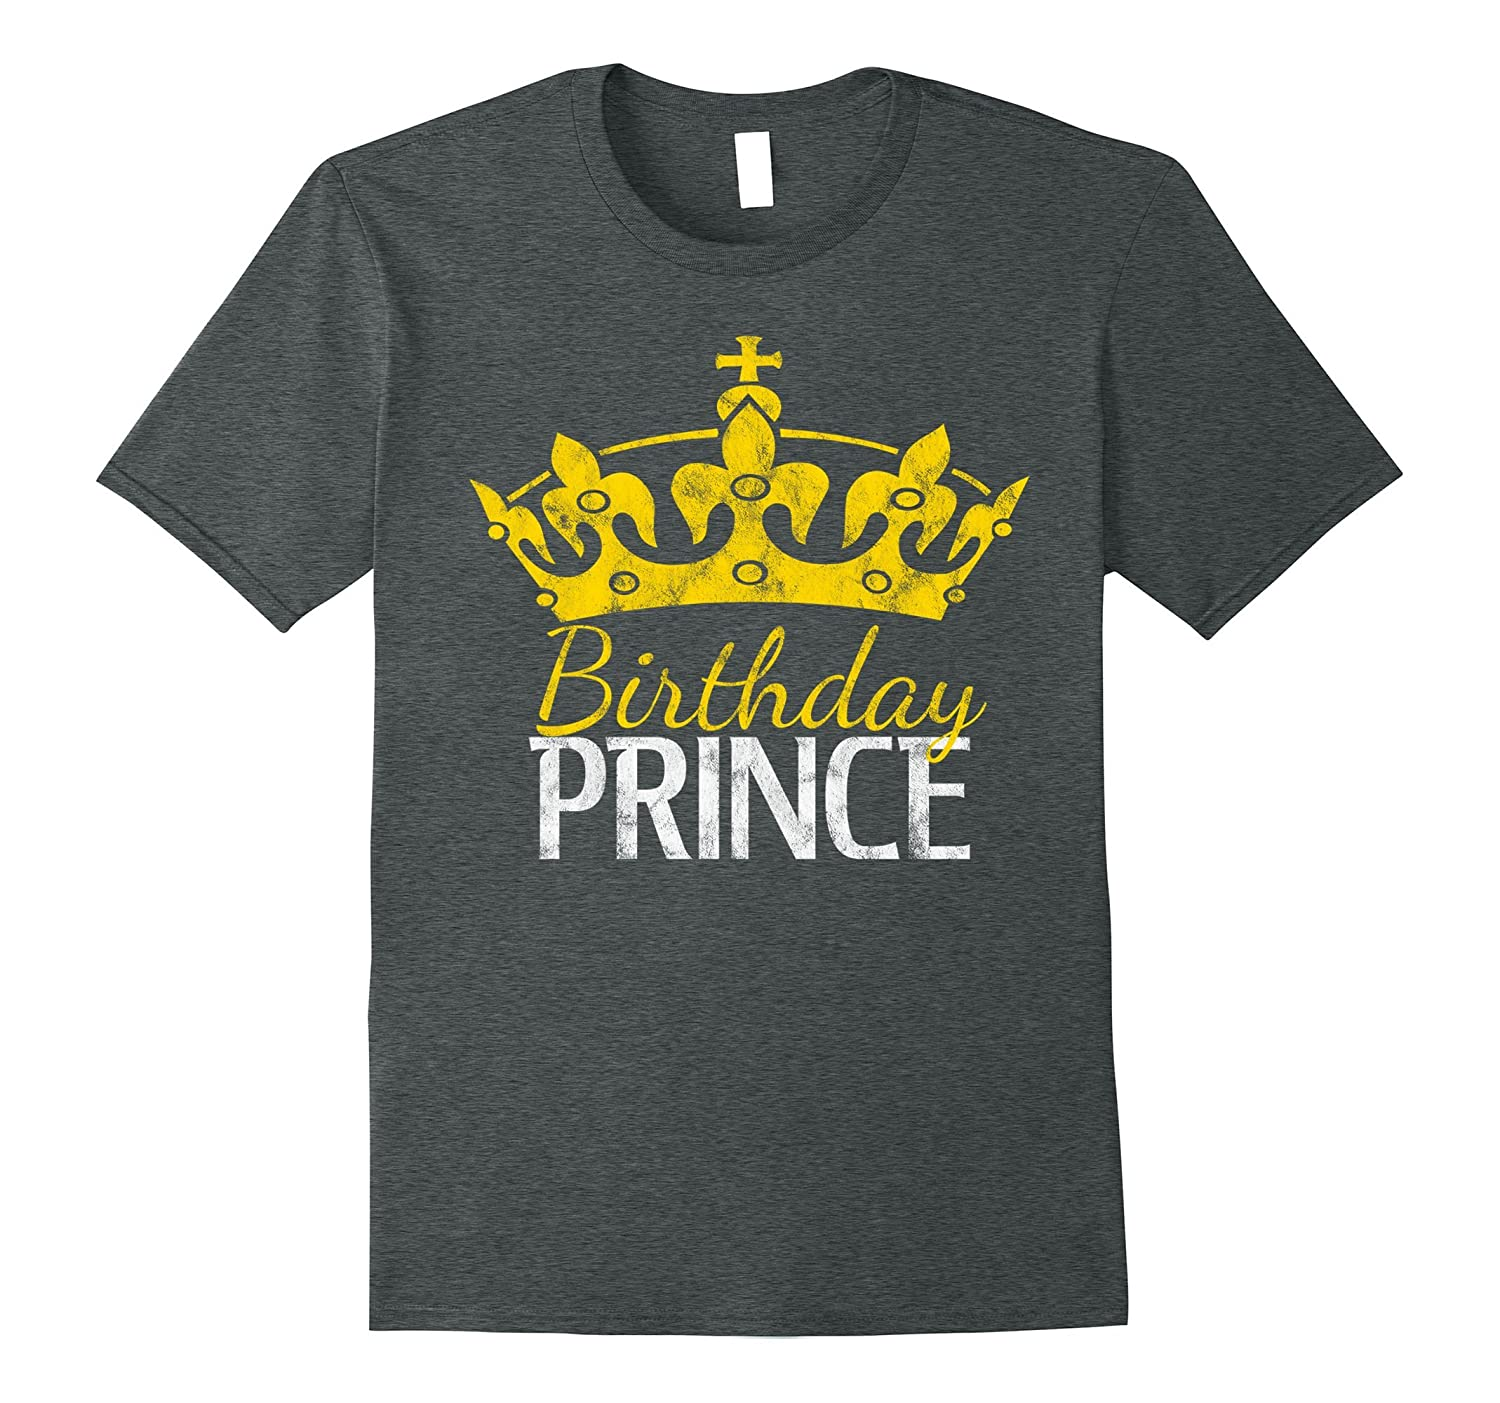 Birthday Prince T-Shirt - gift for men and boys-ah my shirt one gift